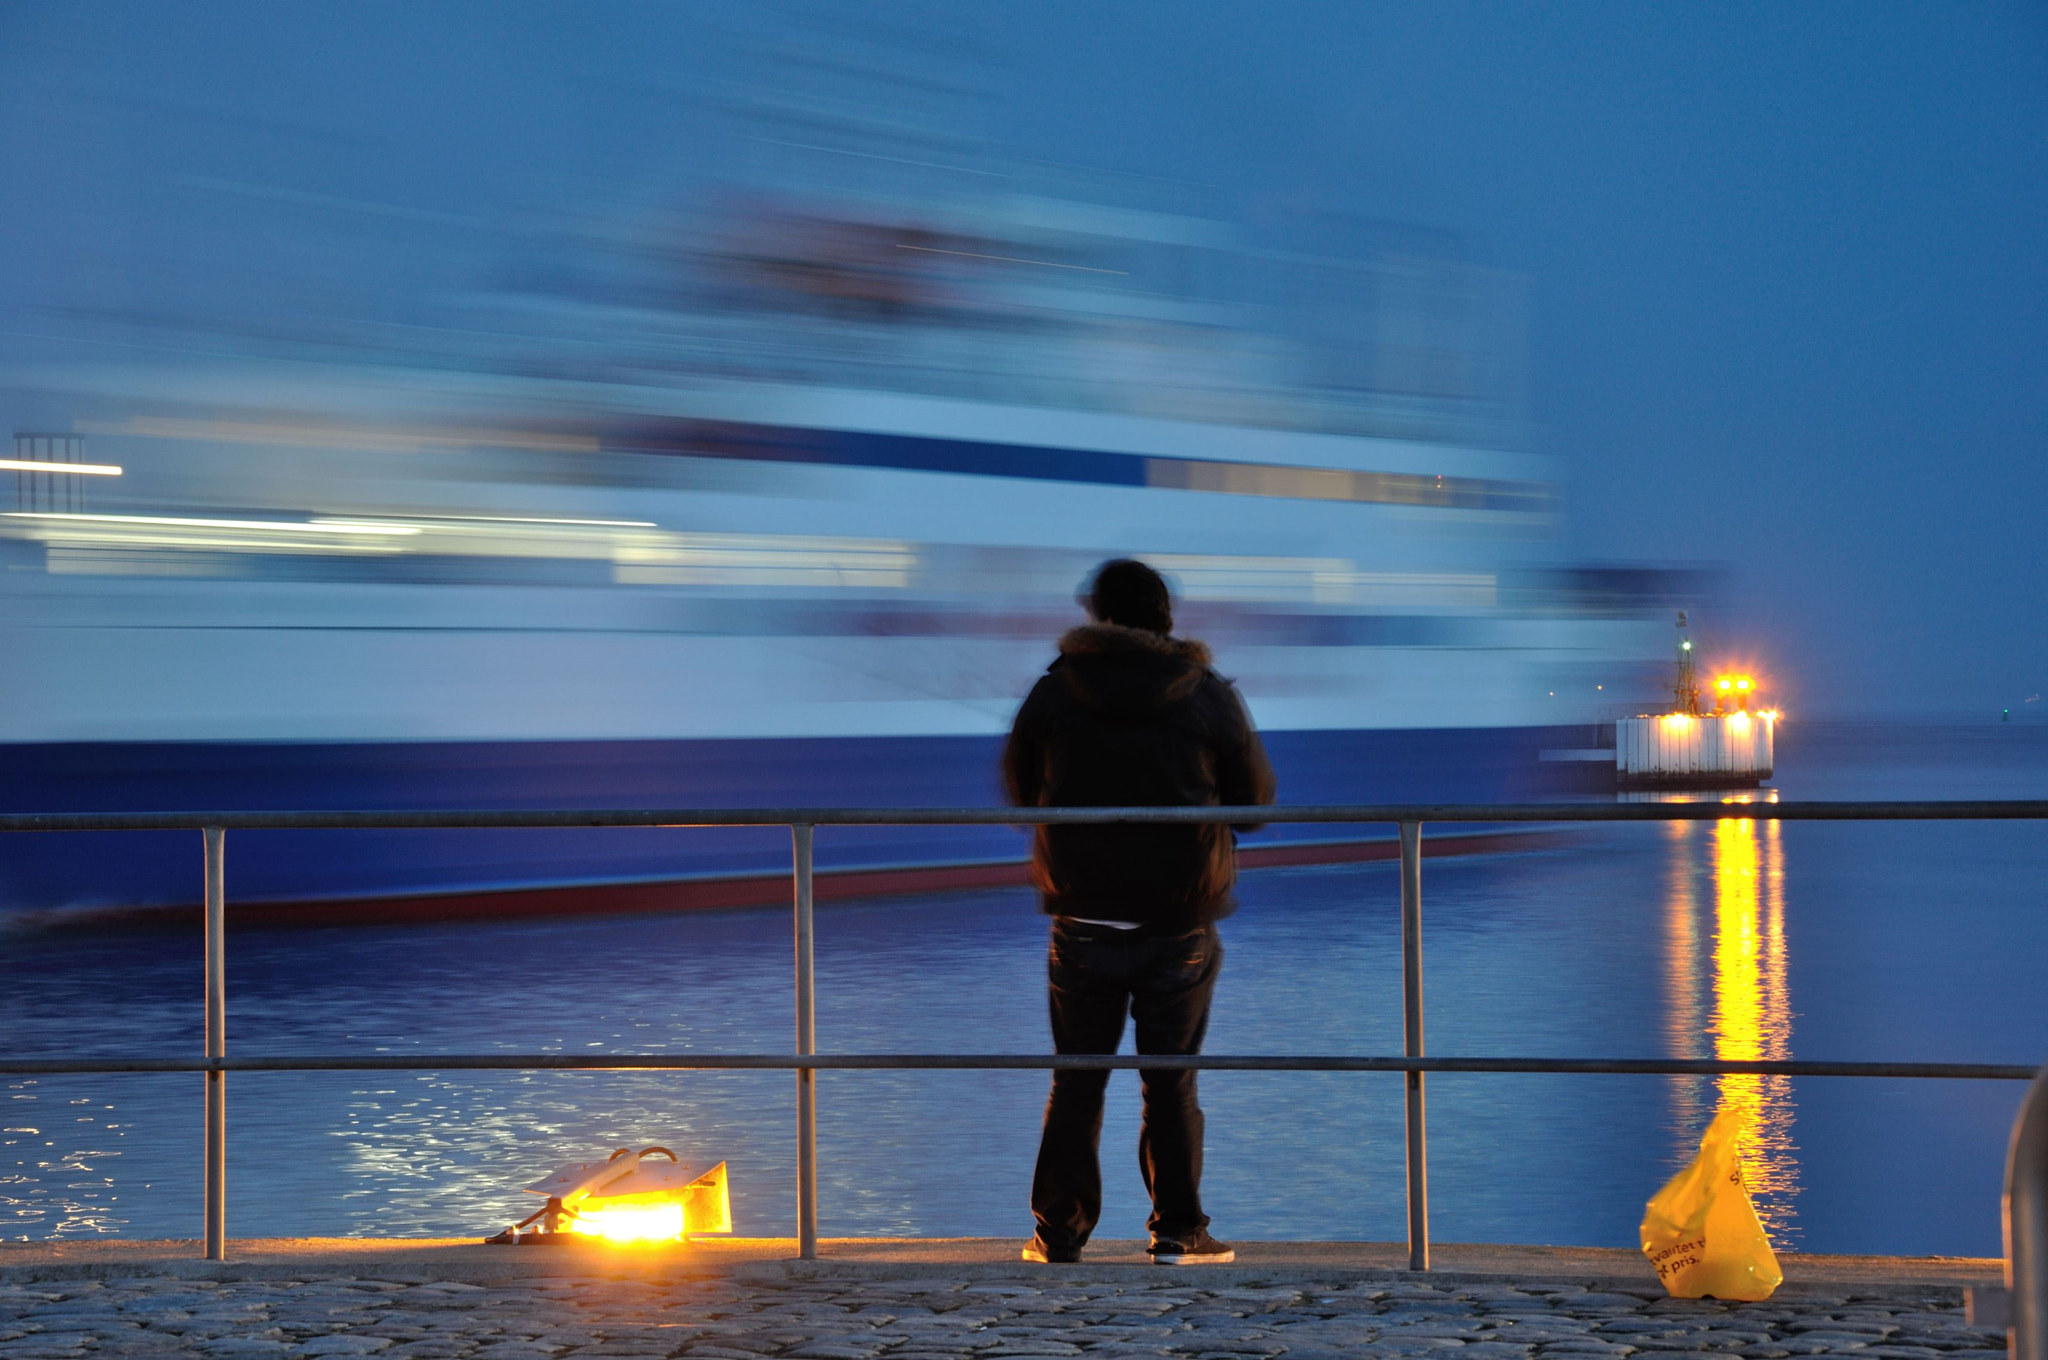 Photograph The ferry by Walter Pletikos on 500px